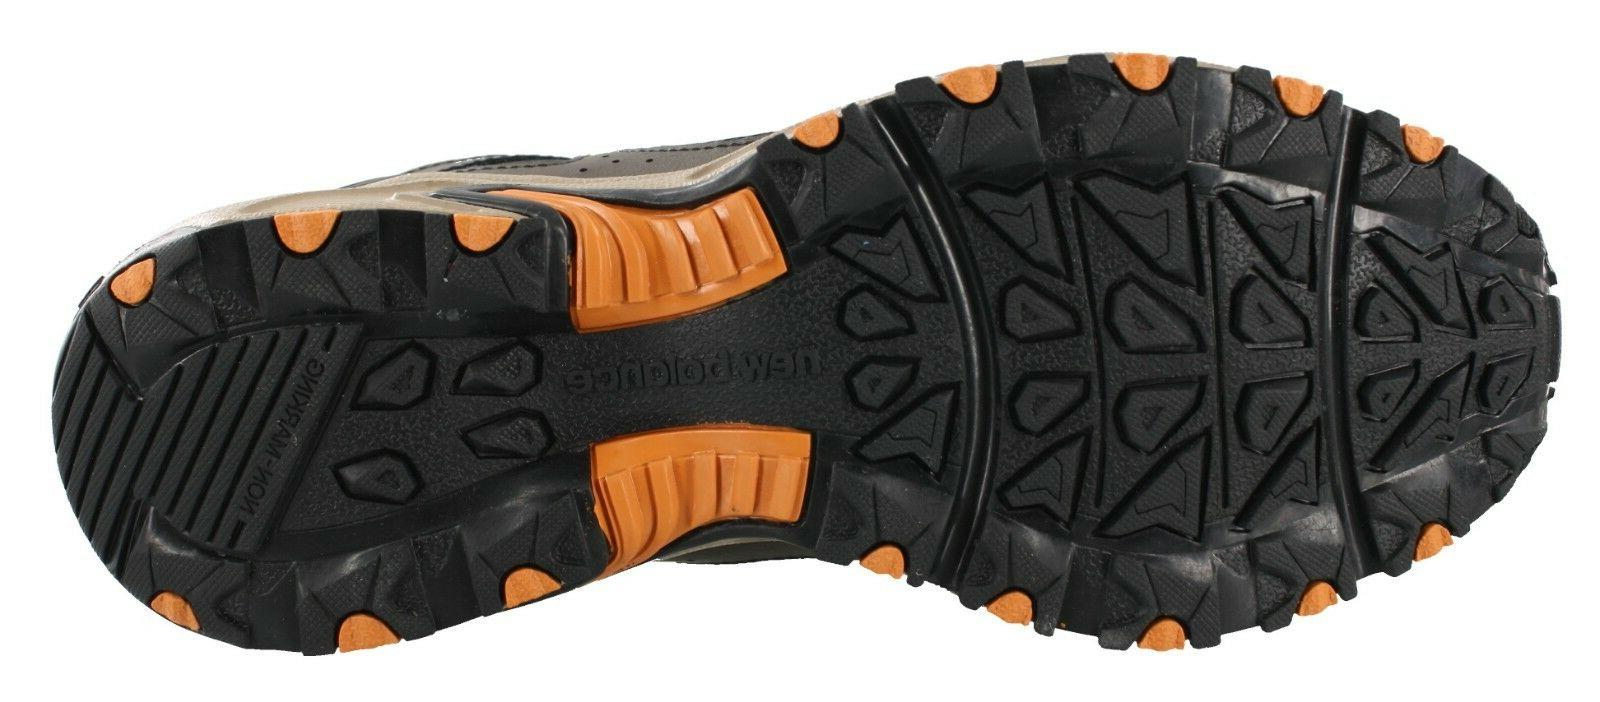 NEW 4E WIDE RESISTANT TRAIL RUNNING SHOES